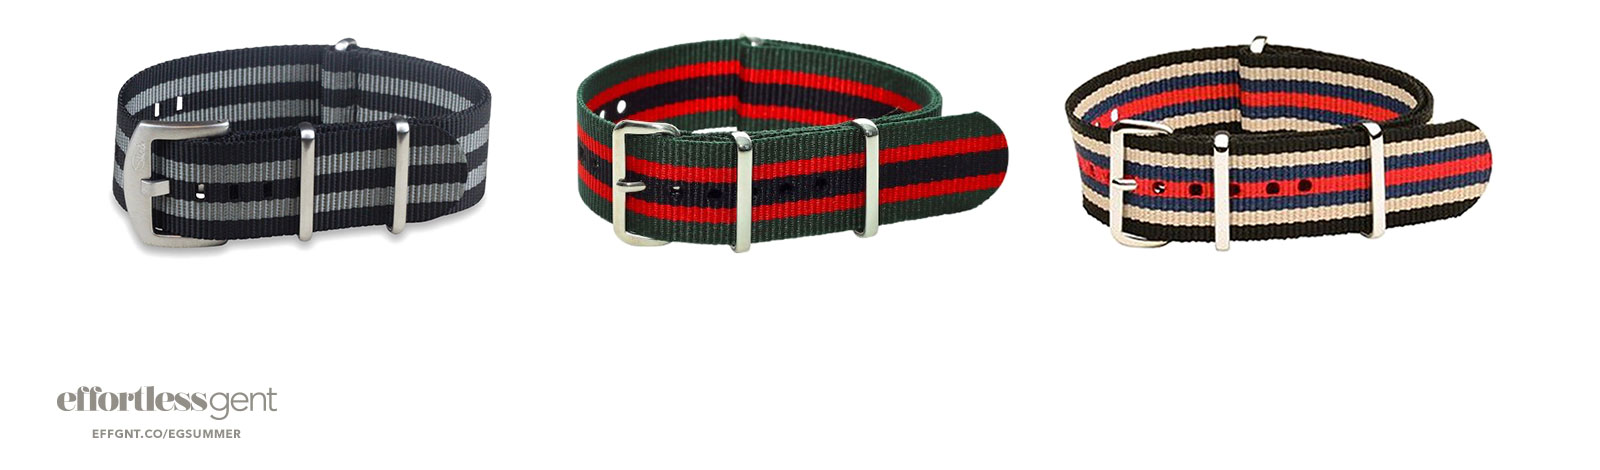 colorful nato watch straps for men